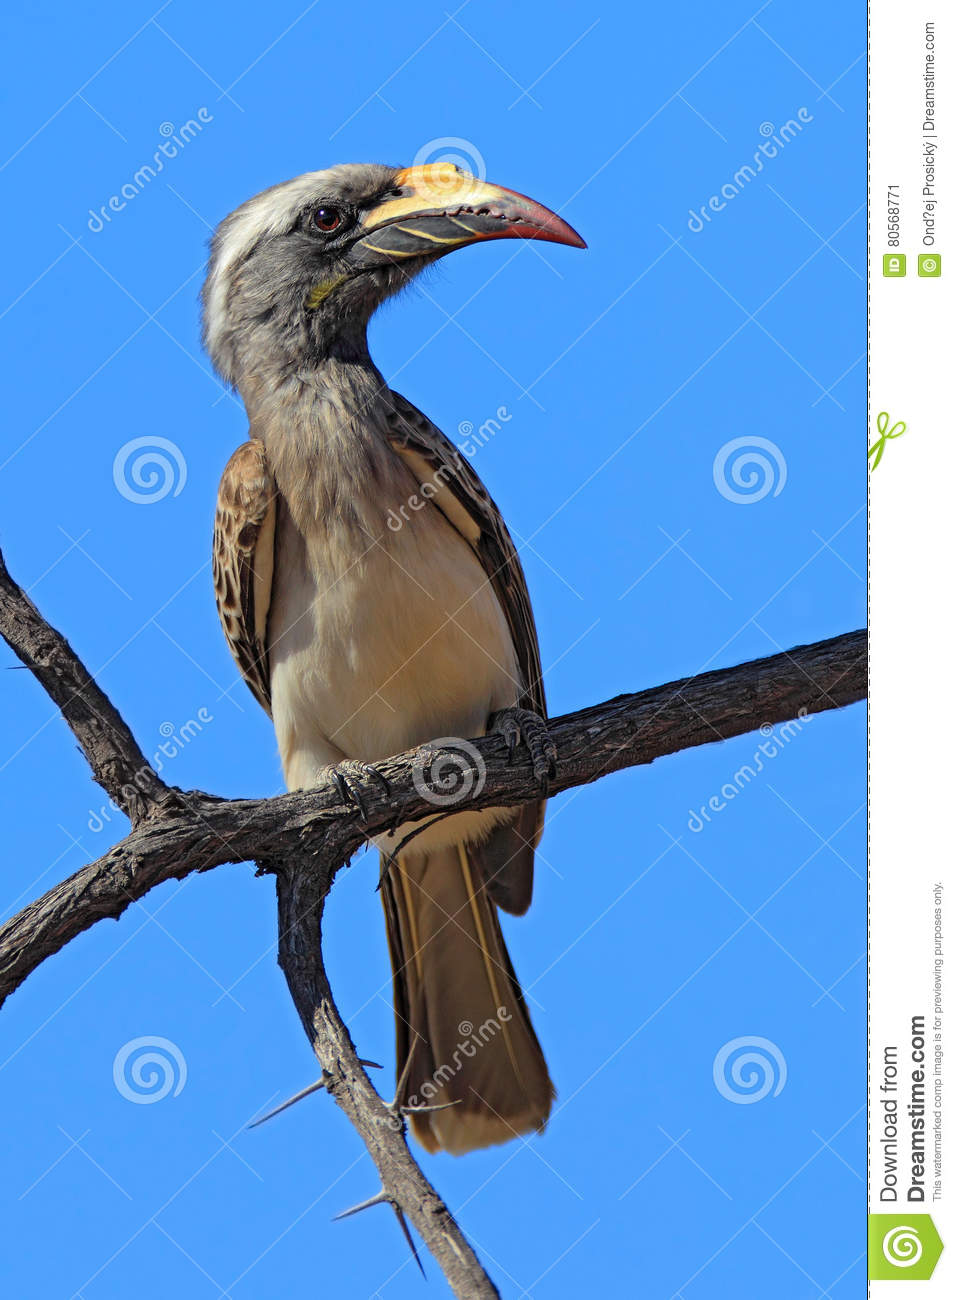 Grey Hornbill clipart #20, Download drawings